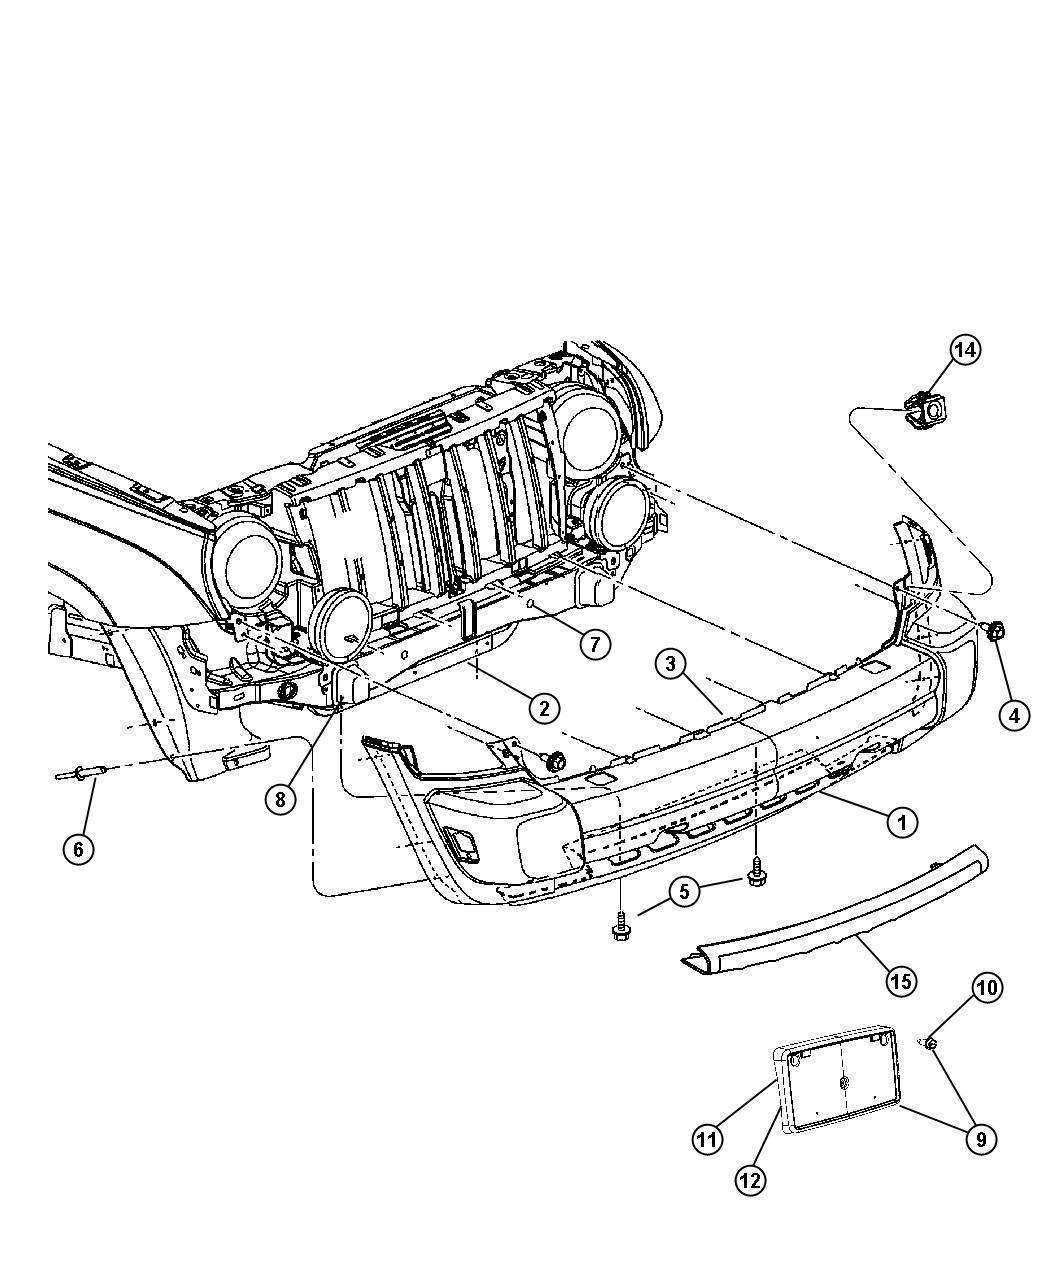 2007 jeep patriot front suspension diagram